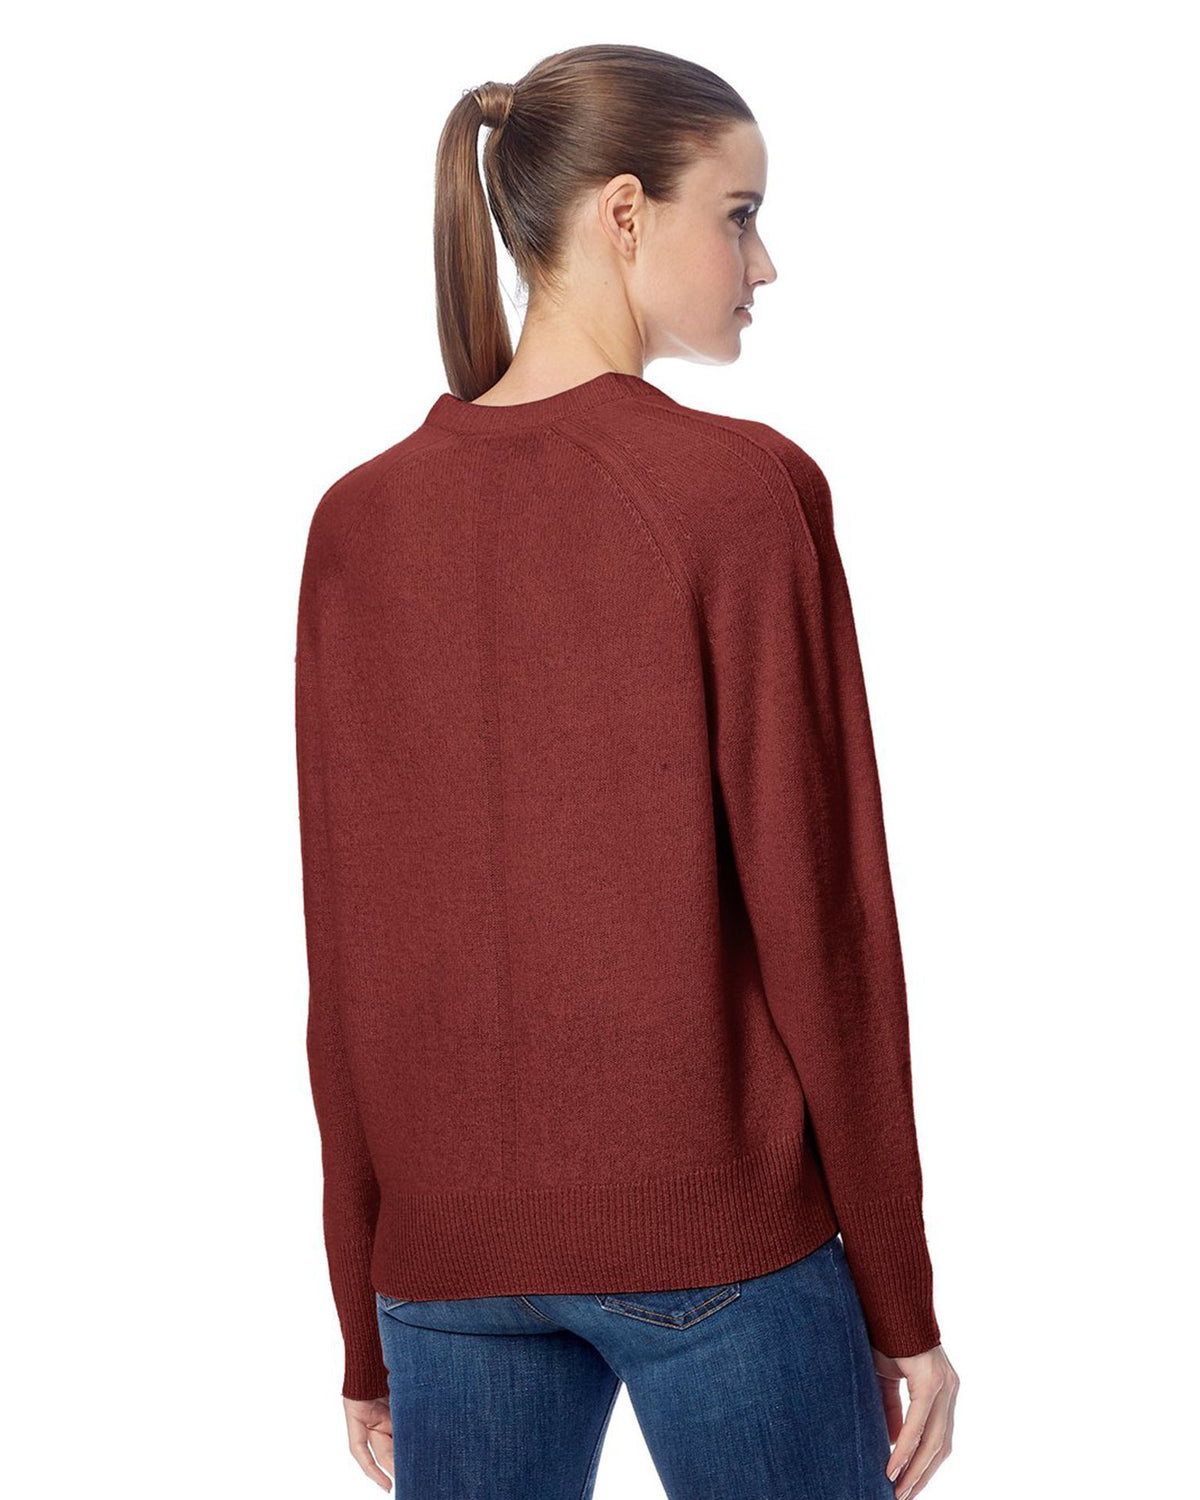 360 Cashmere Clothing Callie V Neck Sweater